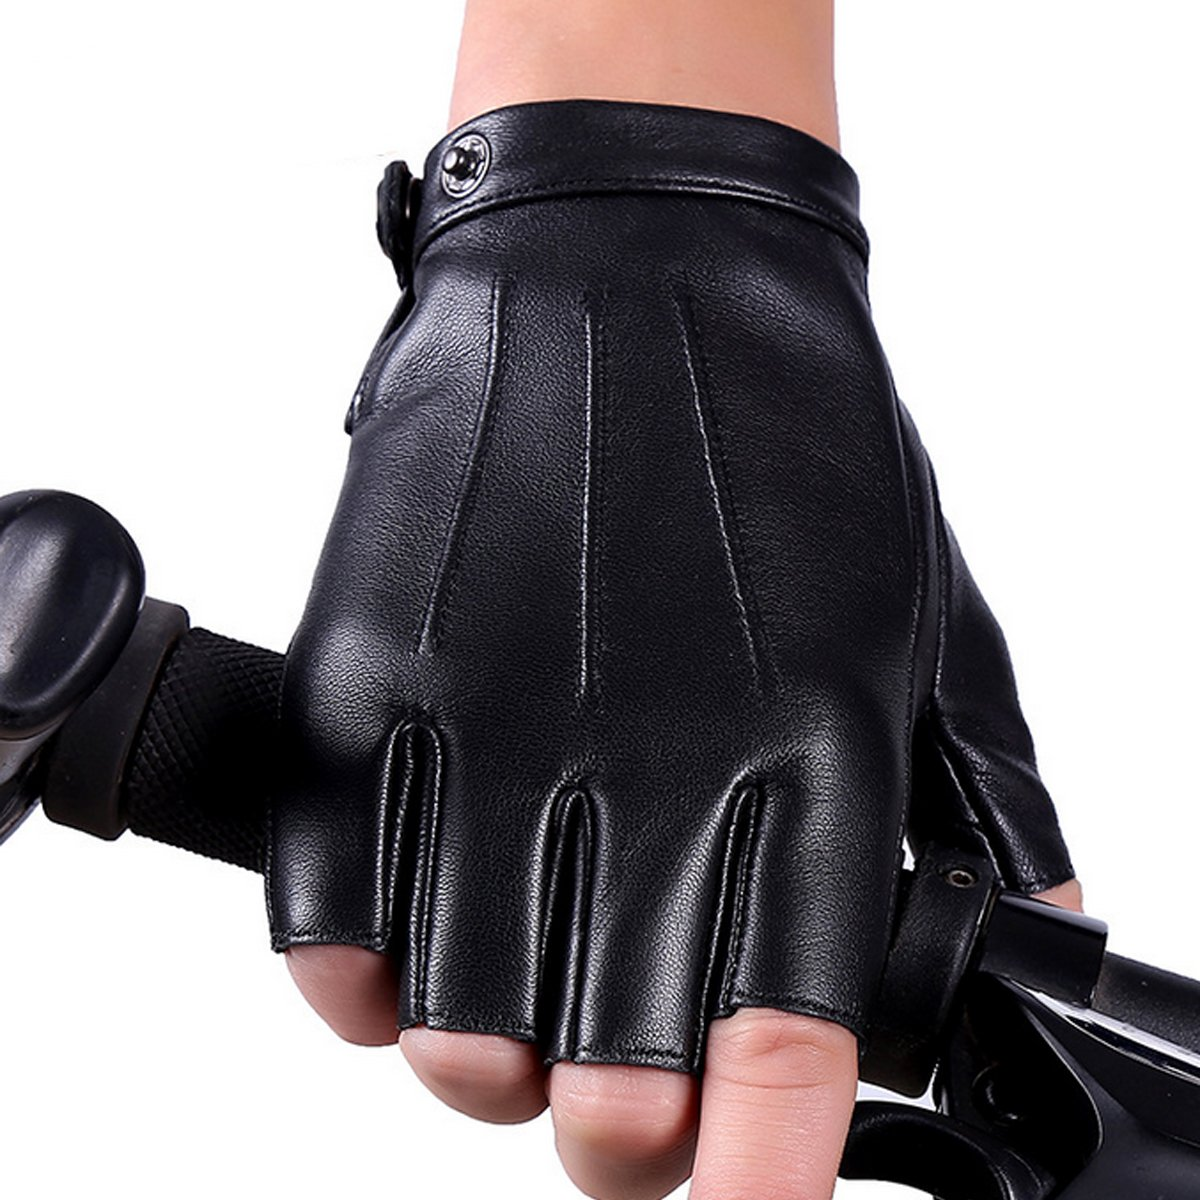 Fingerless Gloves PU Leather Gloves Touchscreen Texting Dress Driving Moto Glove for Men Women Teens (L) by gloveslove (Image #3)